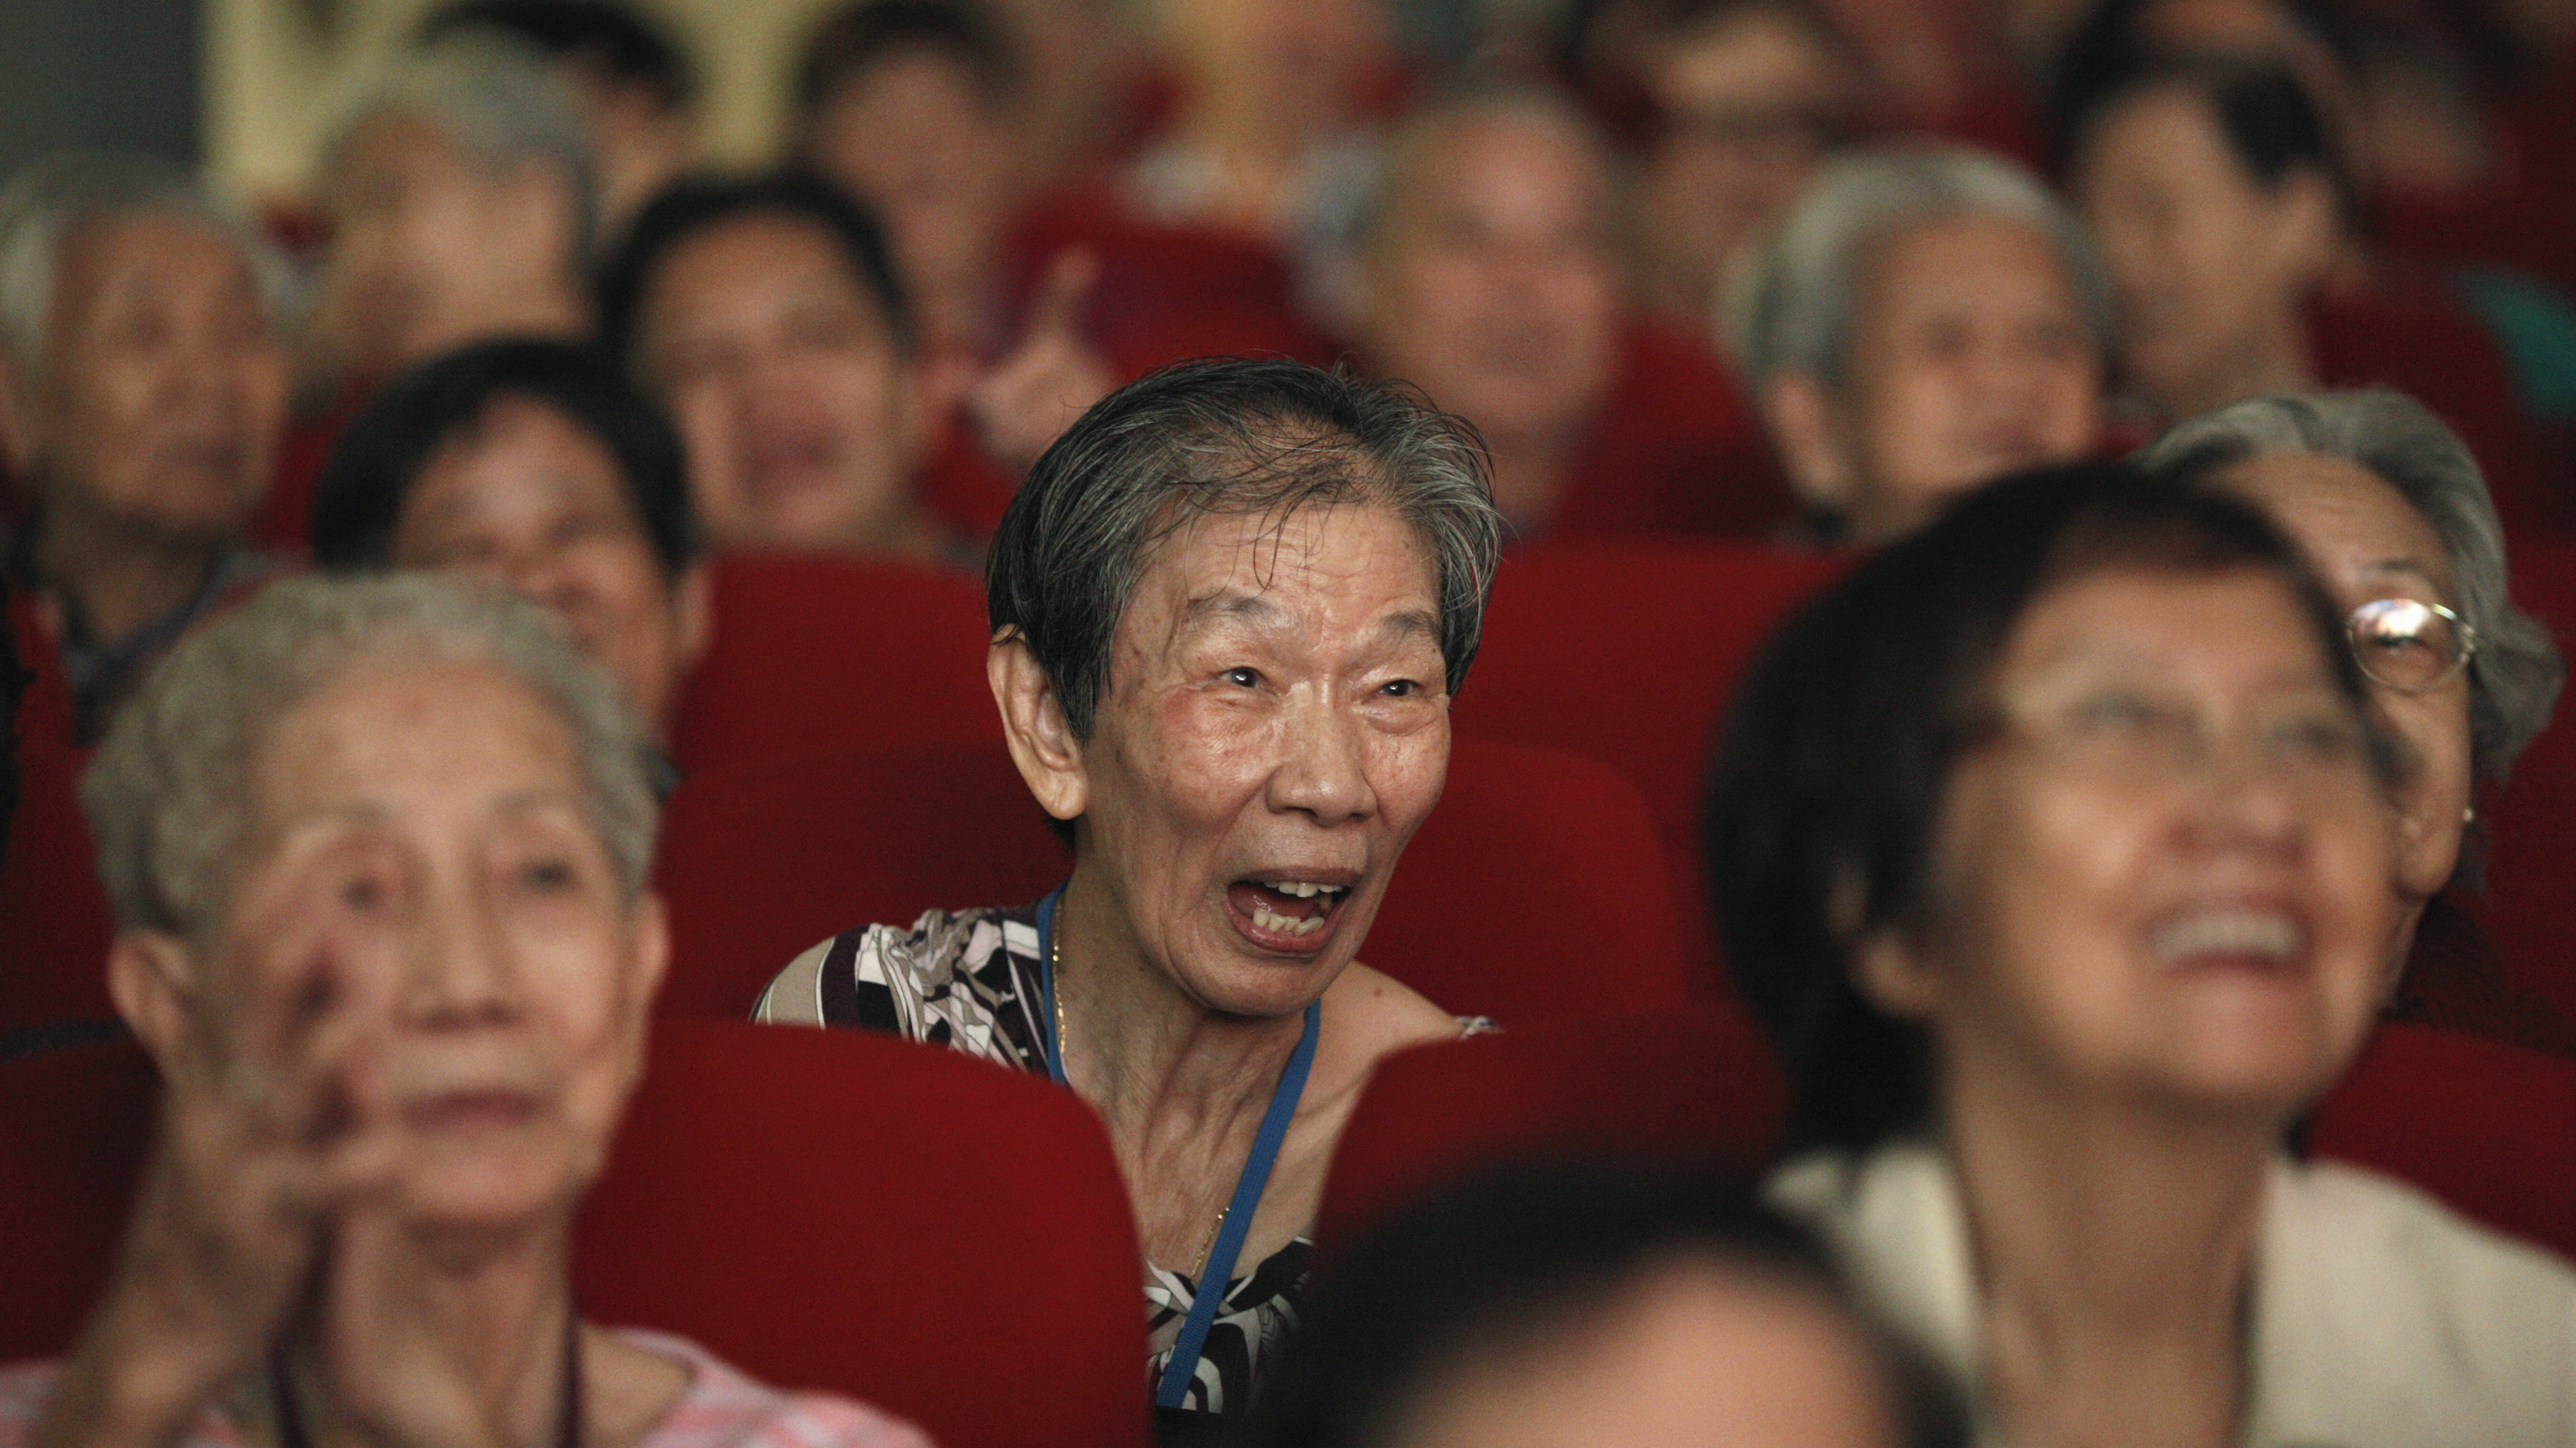 An elderly woman laughs as she watches a free Chinese opera performance ahead of Lunar New Year in Singapore January 10, 2014. The opera show was organised by Shan You, a voluntary welfare organisation, which was raising funds to continue their services to the elderly. REUTERS/Edgar Su (SINGAPORE - Tags: SOCIETY)